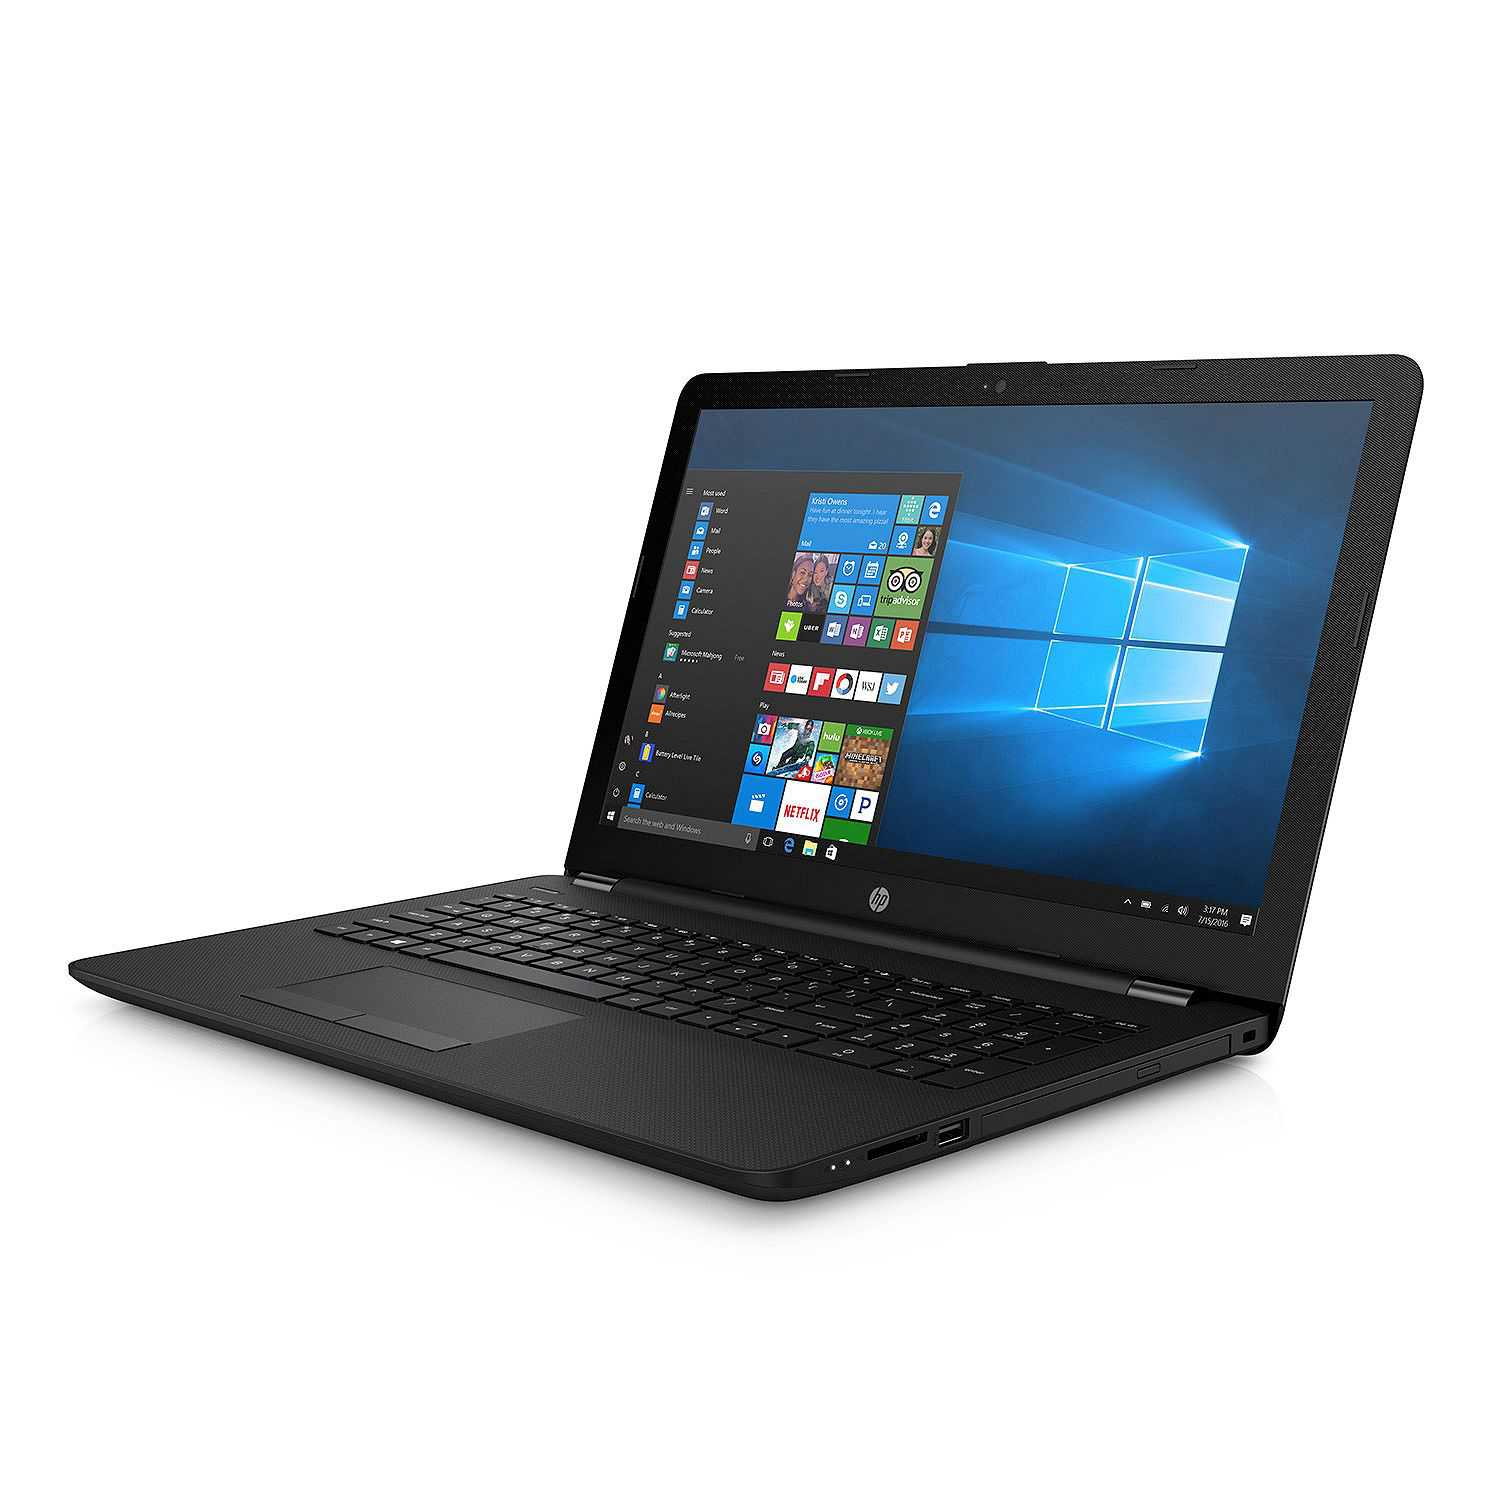 HP 15.6' HD Notebook, AMD A12 Quad-Core Processor, 8GB Memory, 1TB Hard Drive, Optical Drive, HD Webcam, Windows 10 Home